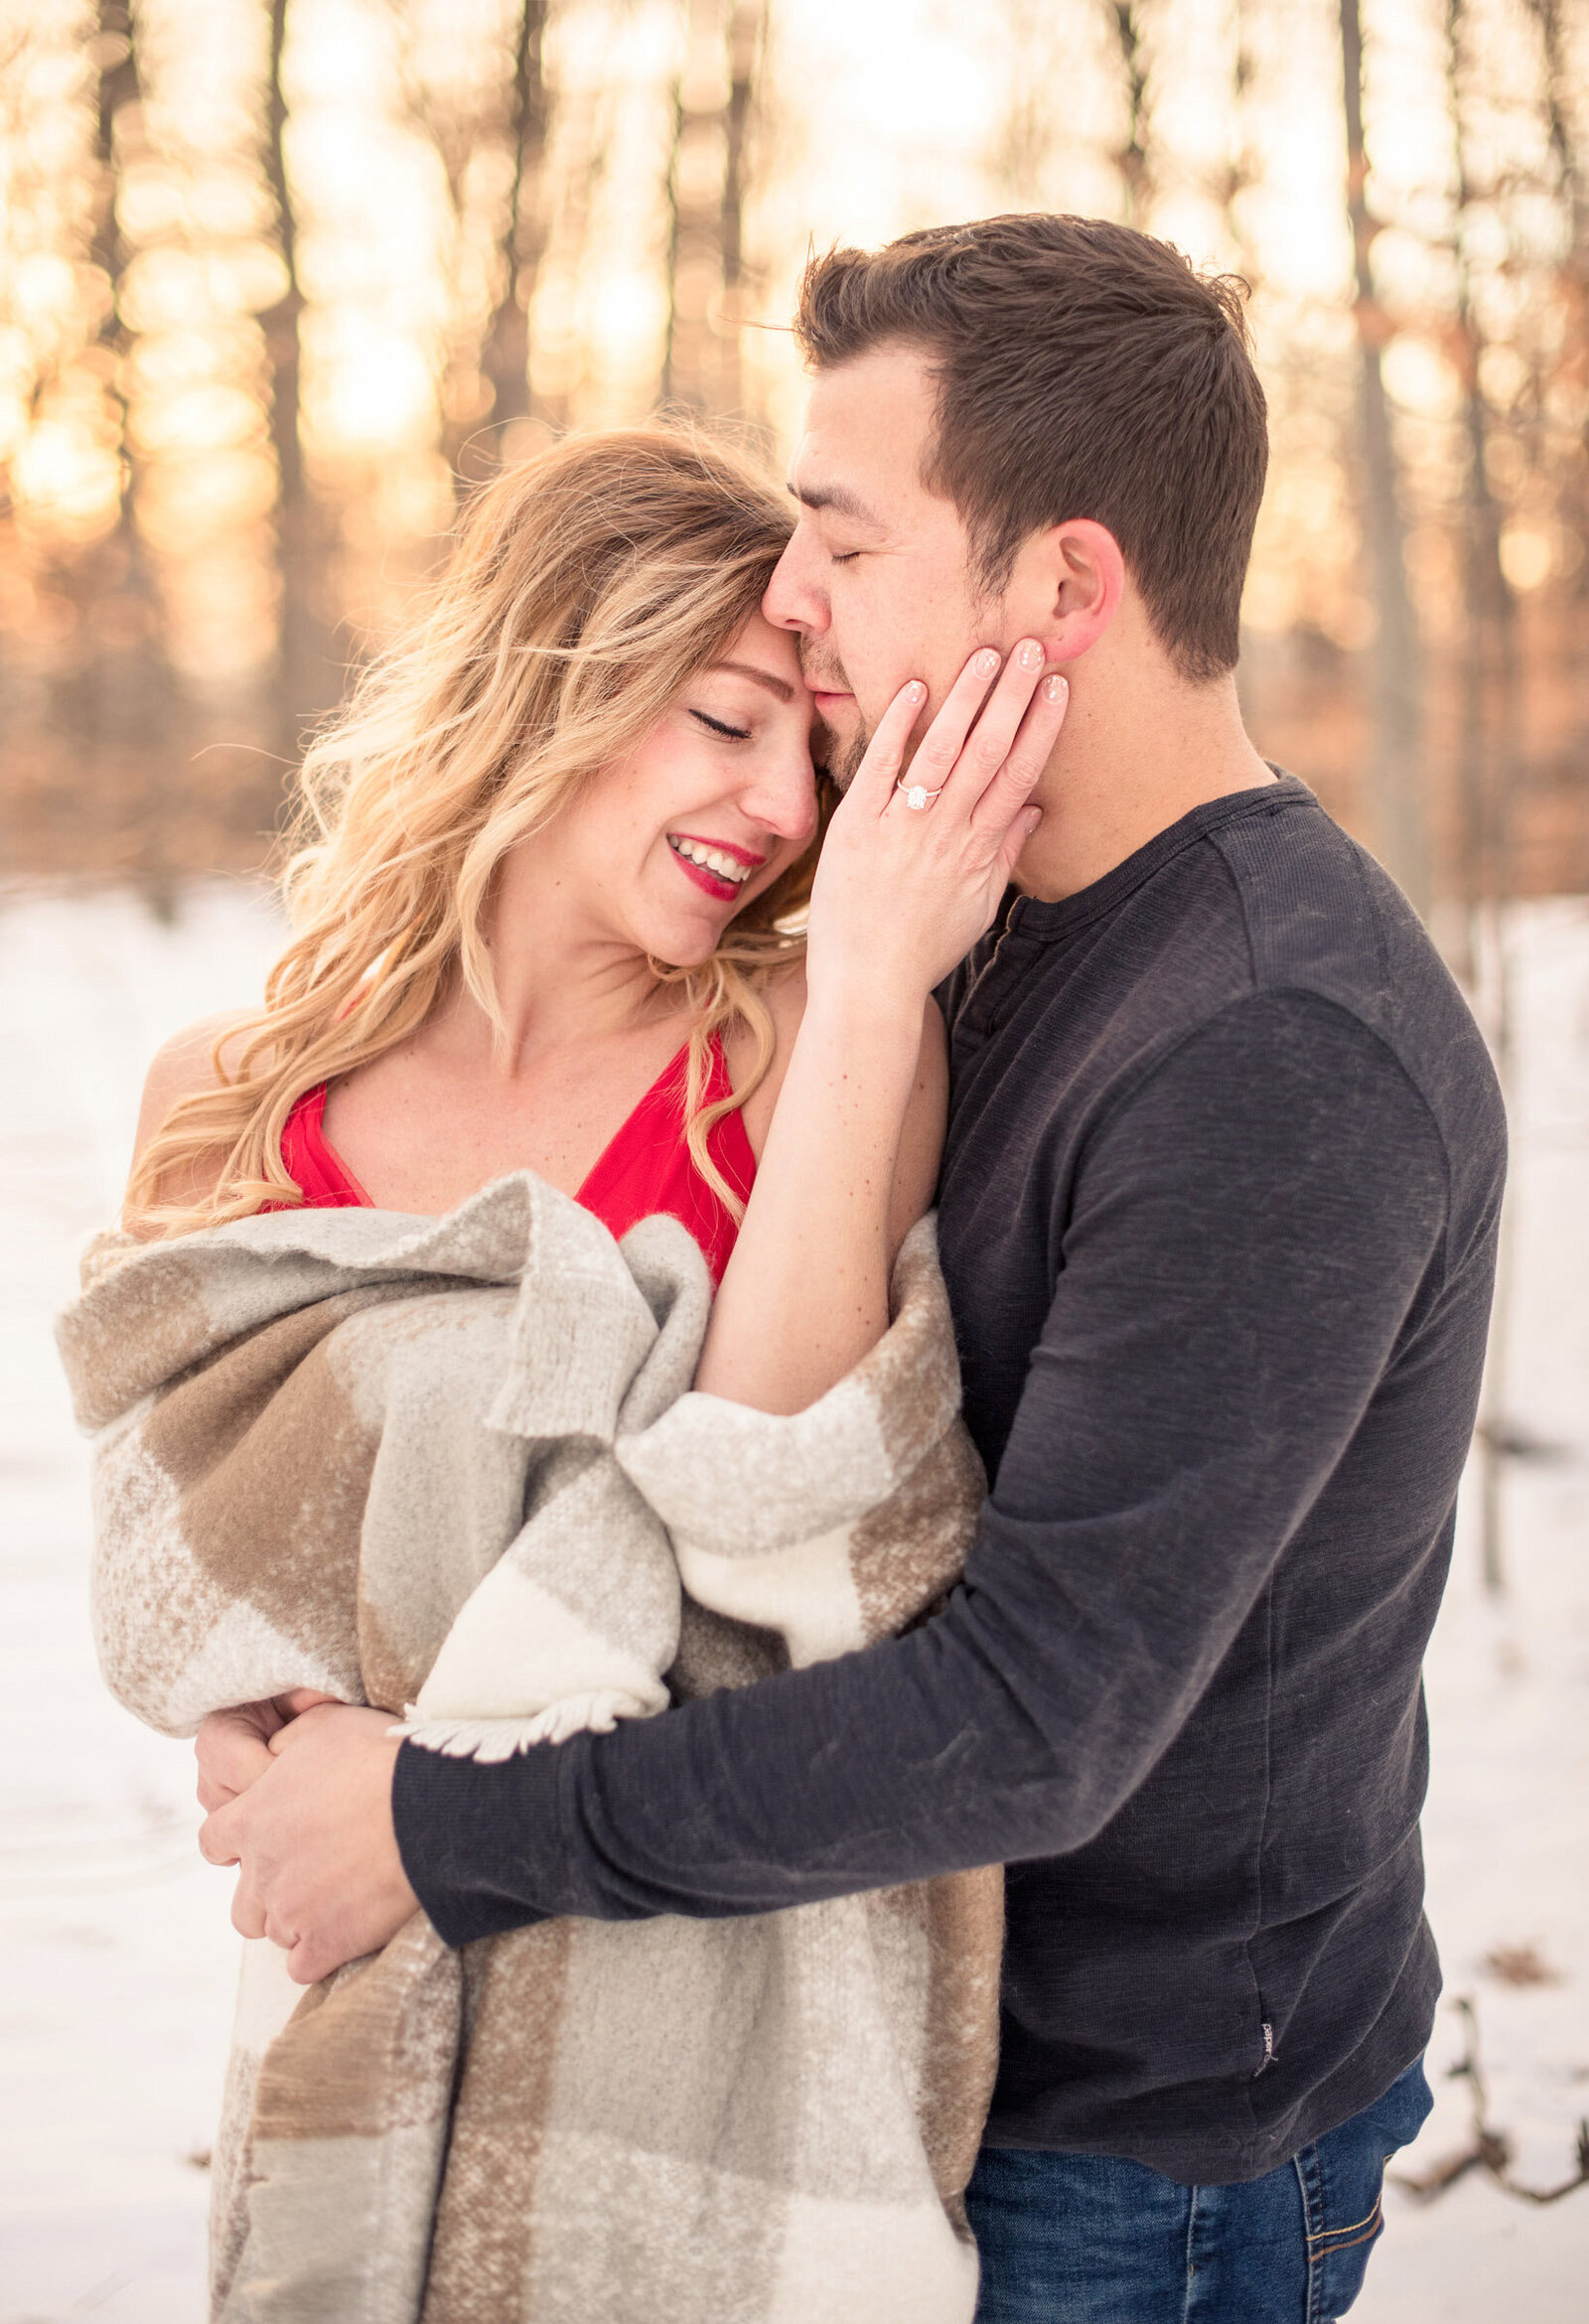 23-hudson-valley-ny-engagement-photographer